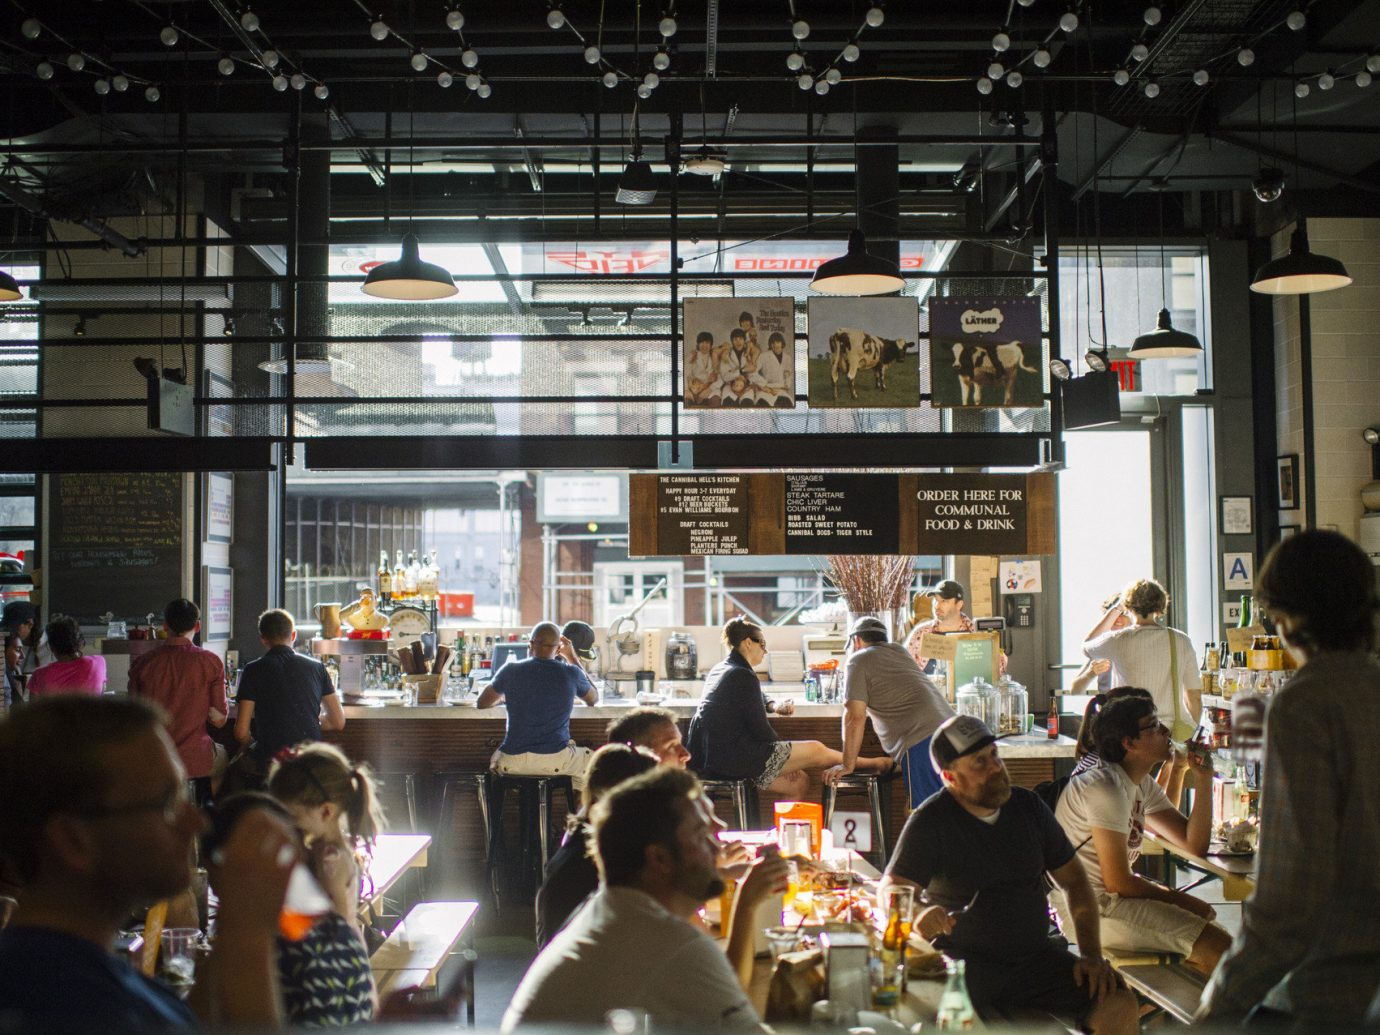 Dining Eat food court Hip industrial interior natural light people trendy Trip Ideas urban windows person indoor crowd ceiling group convention